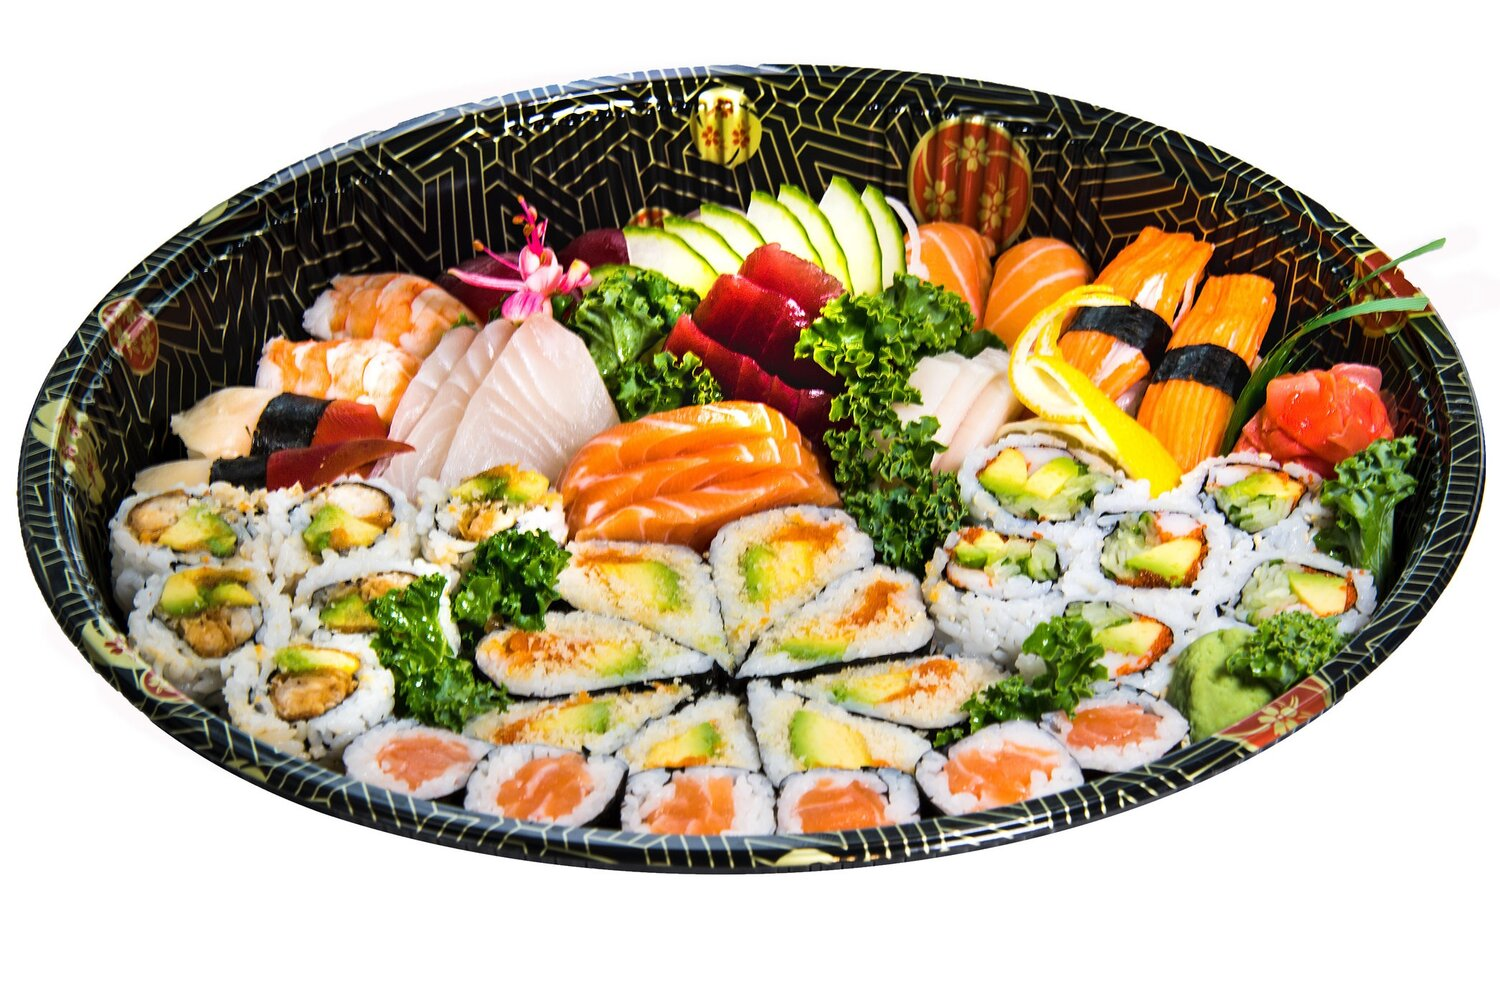 Party Tray A    Sushi (12) Kamikazie (8) Sashimi (12) Rock & Roll (6)  Salmon Roll (6) California Roll (6)